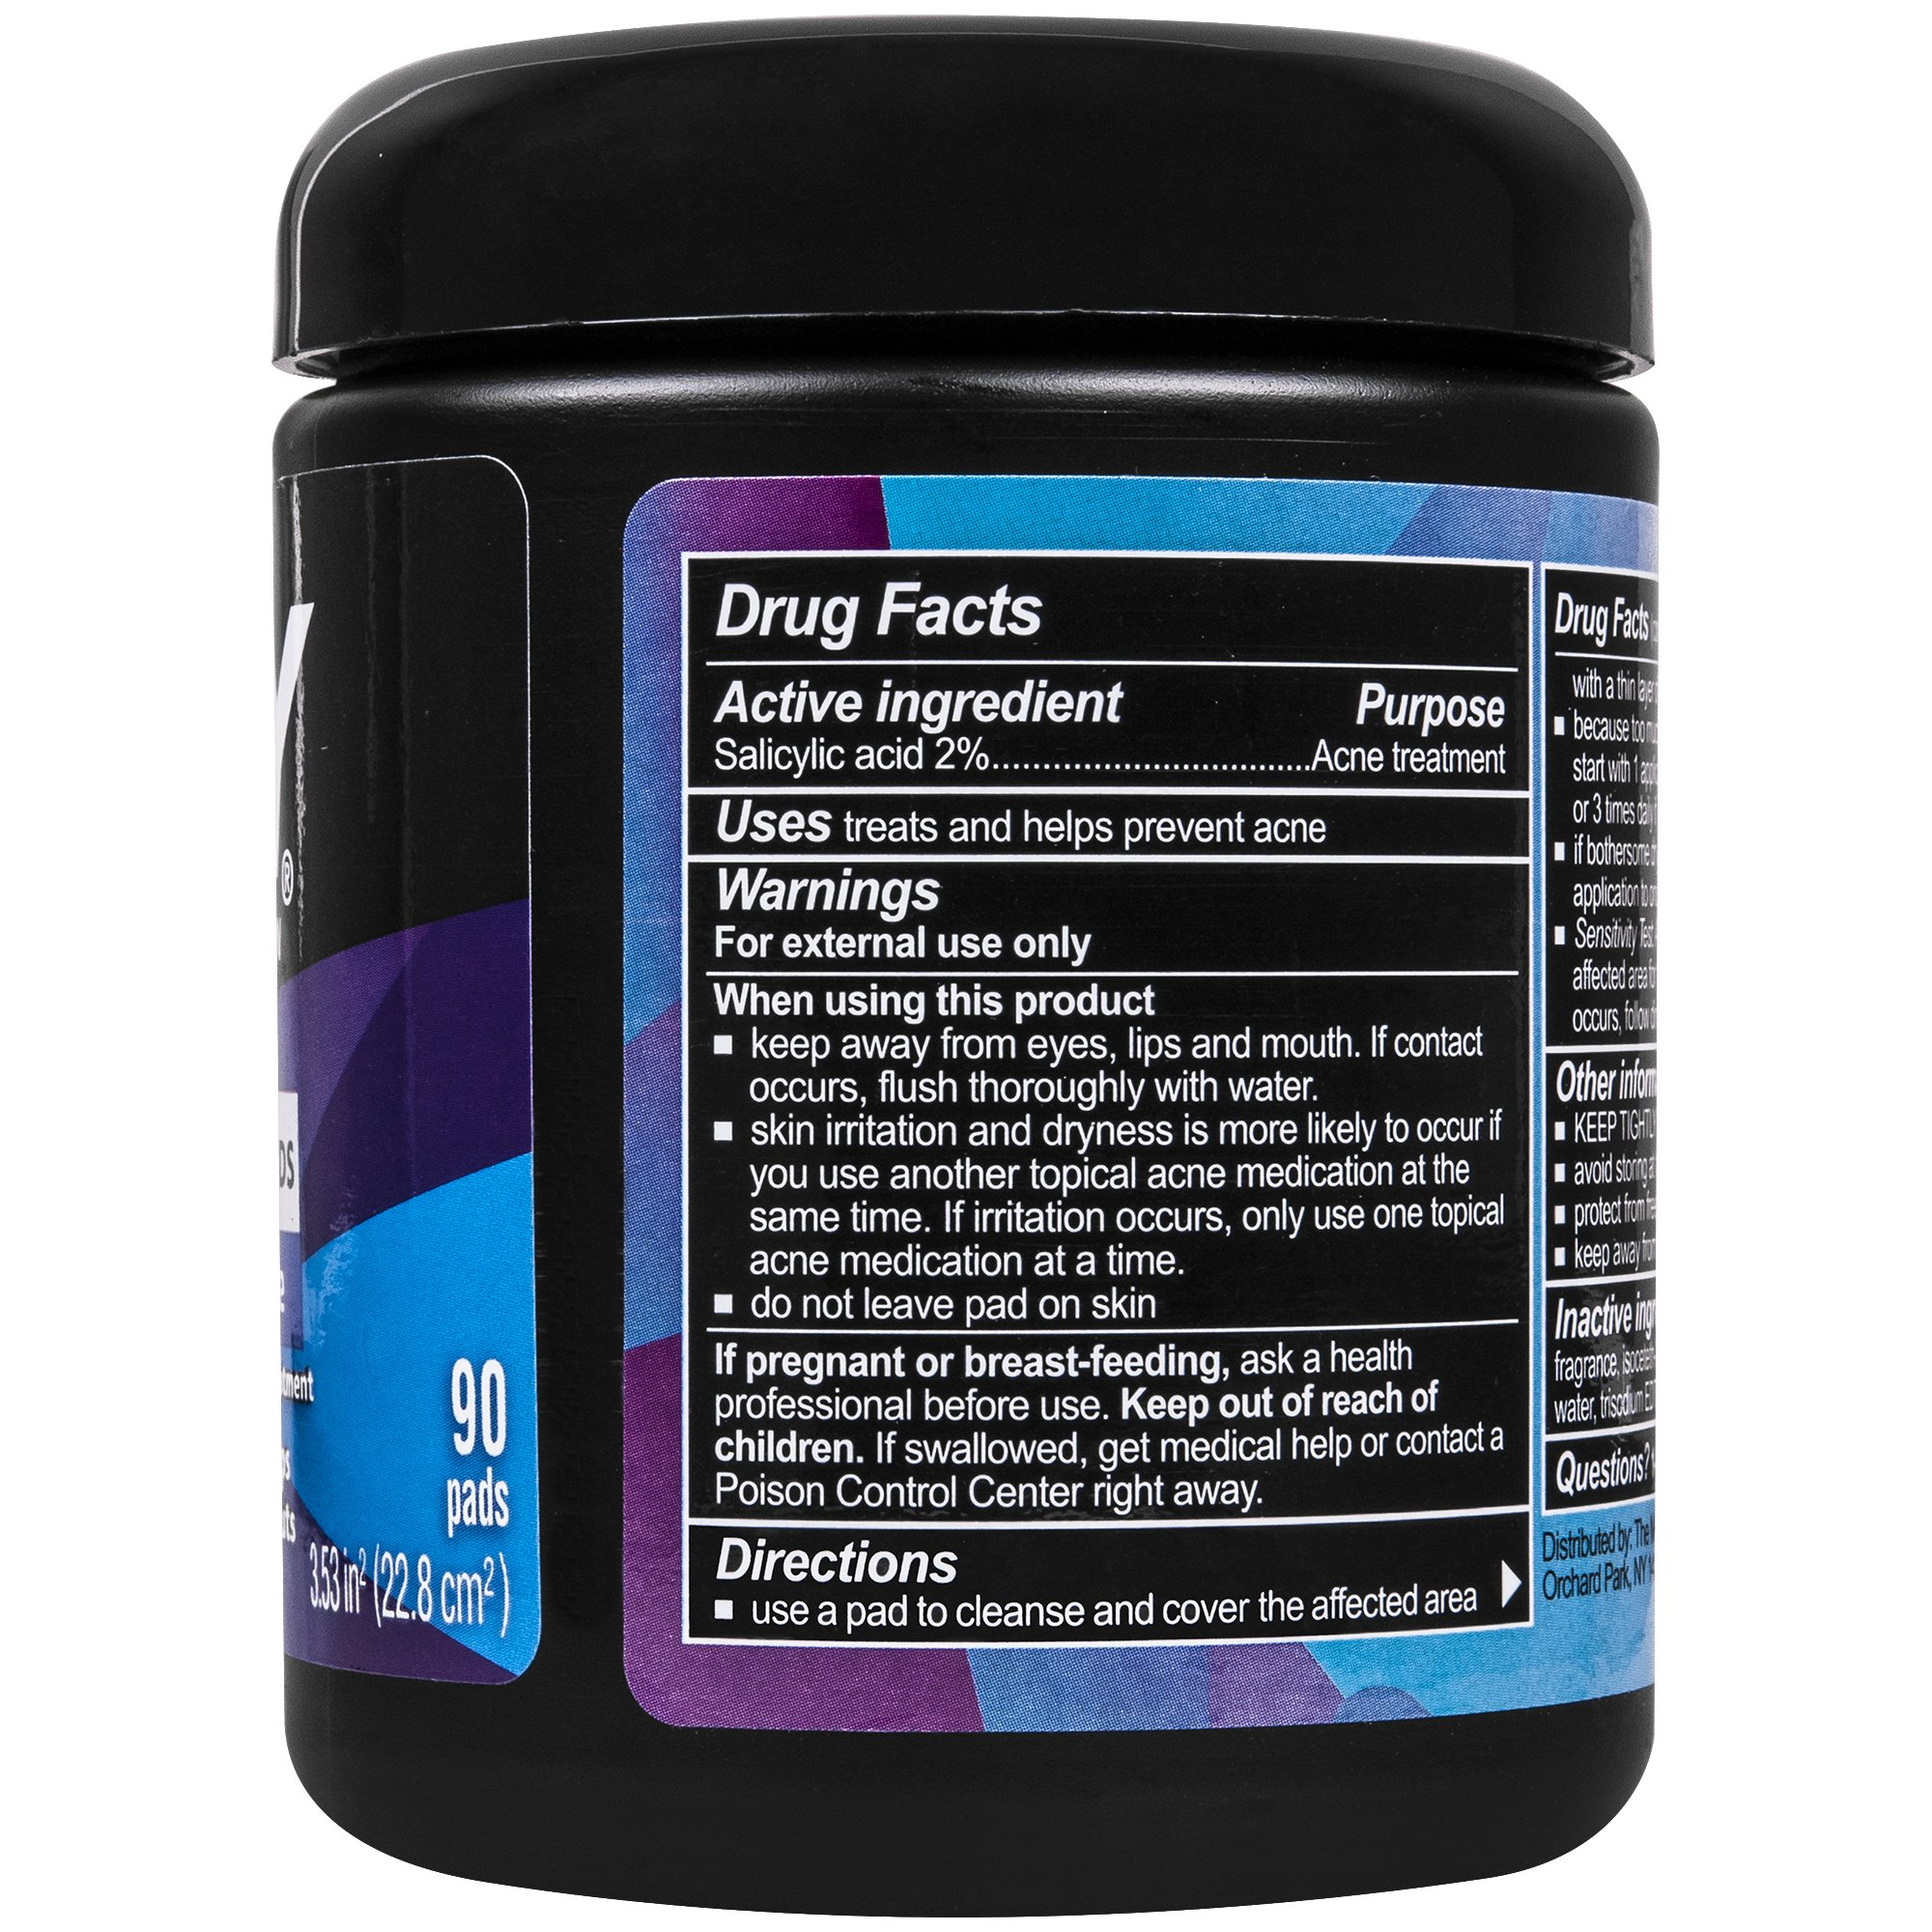 OXY Daily Defense Cleansing Pads 90 Each (Pack of 3) by OXY (Image #3)